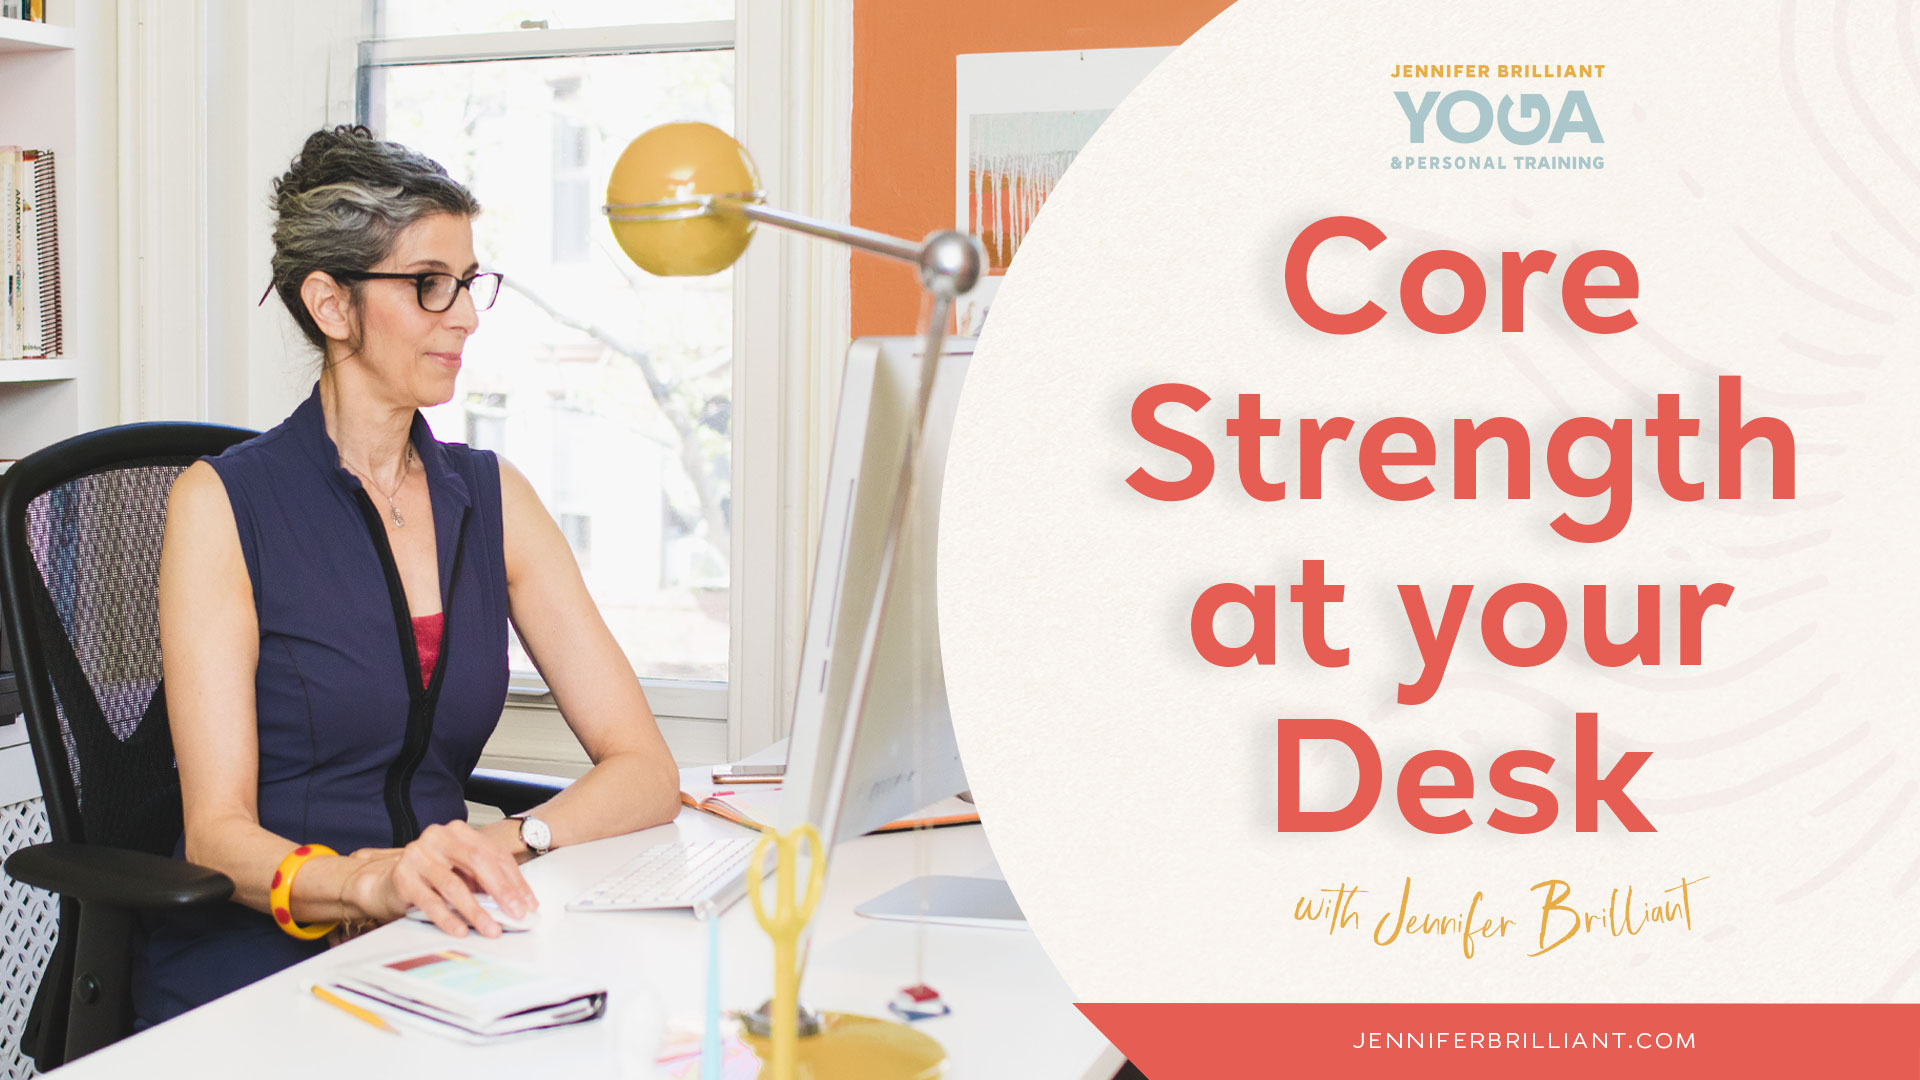 On-Demand Yoga Videos Core Strength At Your Desk